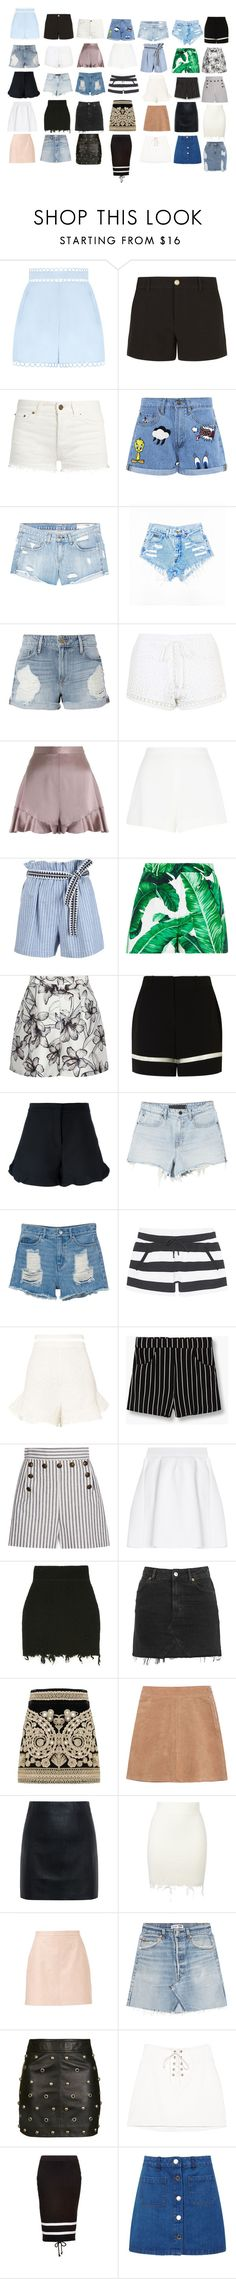 """My closet"" by sez99 ❤ liked on Polyvore featuring Zimmermann, Gucci, Yves Saint Laurent, Paul & Joe Sister, rag & bone/JEAN, Frame, Topshop, Giambattista Valli, Lemlem and Dolce&Gabbana"